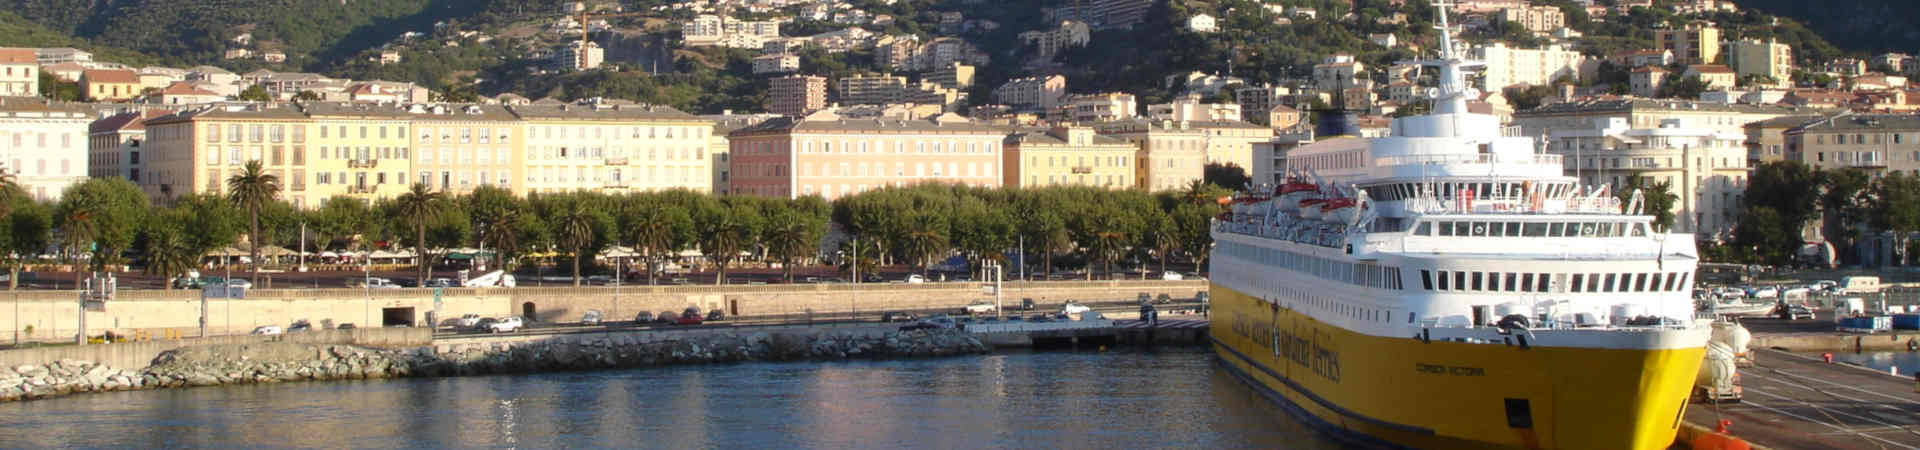 Resource image of the destination port Bastia for the ferry route Genova - Bastia